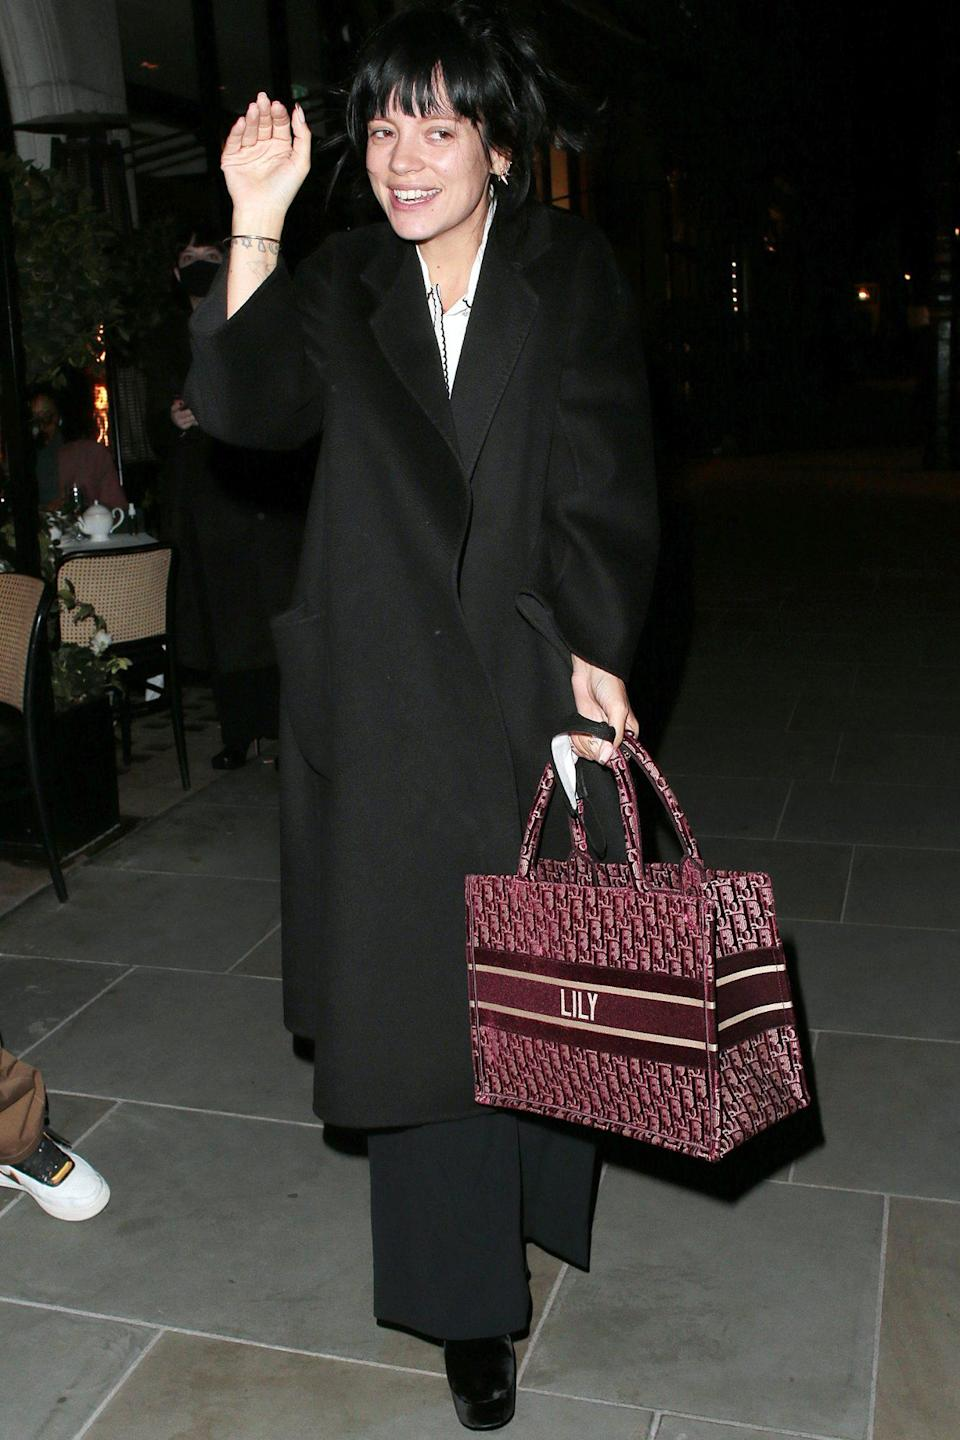 <p>Lily Allen leaves Scott's restaurant in London on Monday with a monogrammed bag. </p>